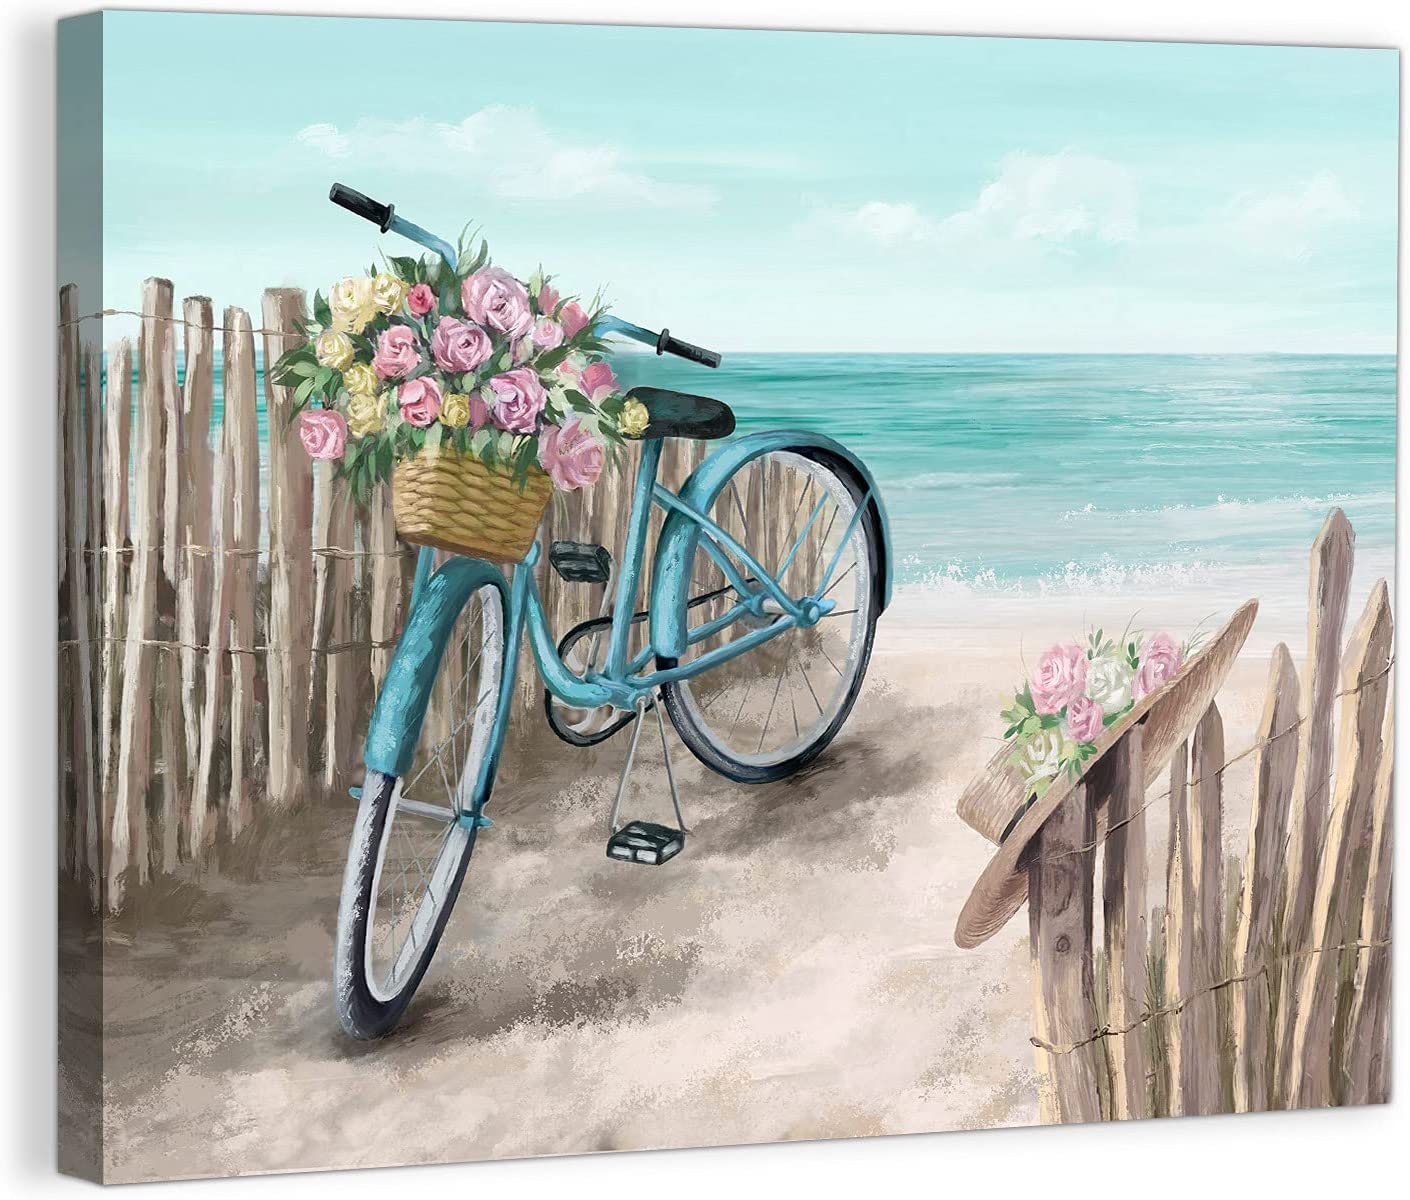 Beach Canvas Wall Art for Bathroom Bicycle Theme Ocean Painting Pictures for Kids Room Decor Modern Seaside Wall Decor for Bedroom Kitchen Framed Artwork for Office Home Wall Decoration Size 12x16